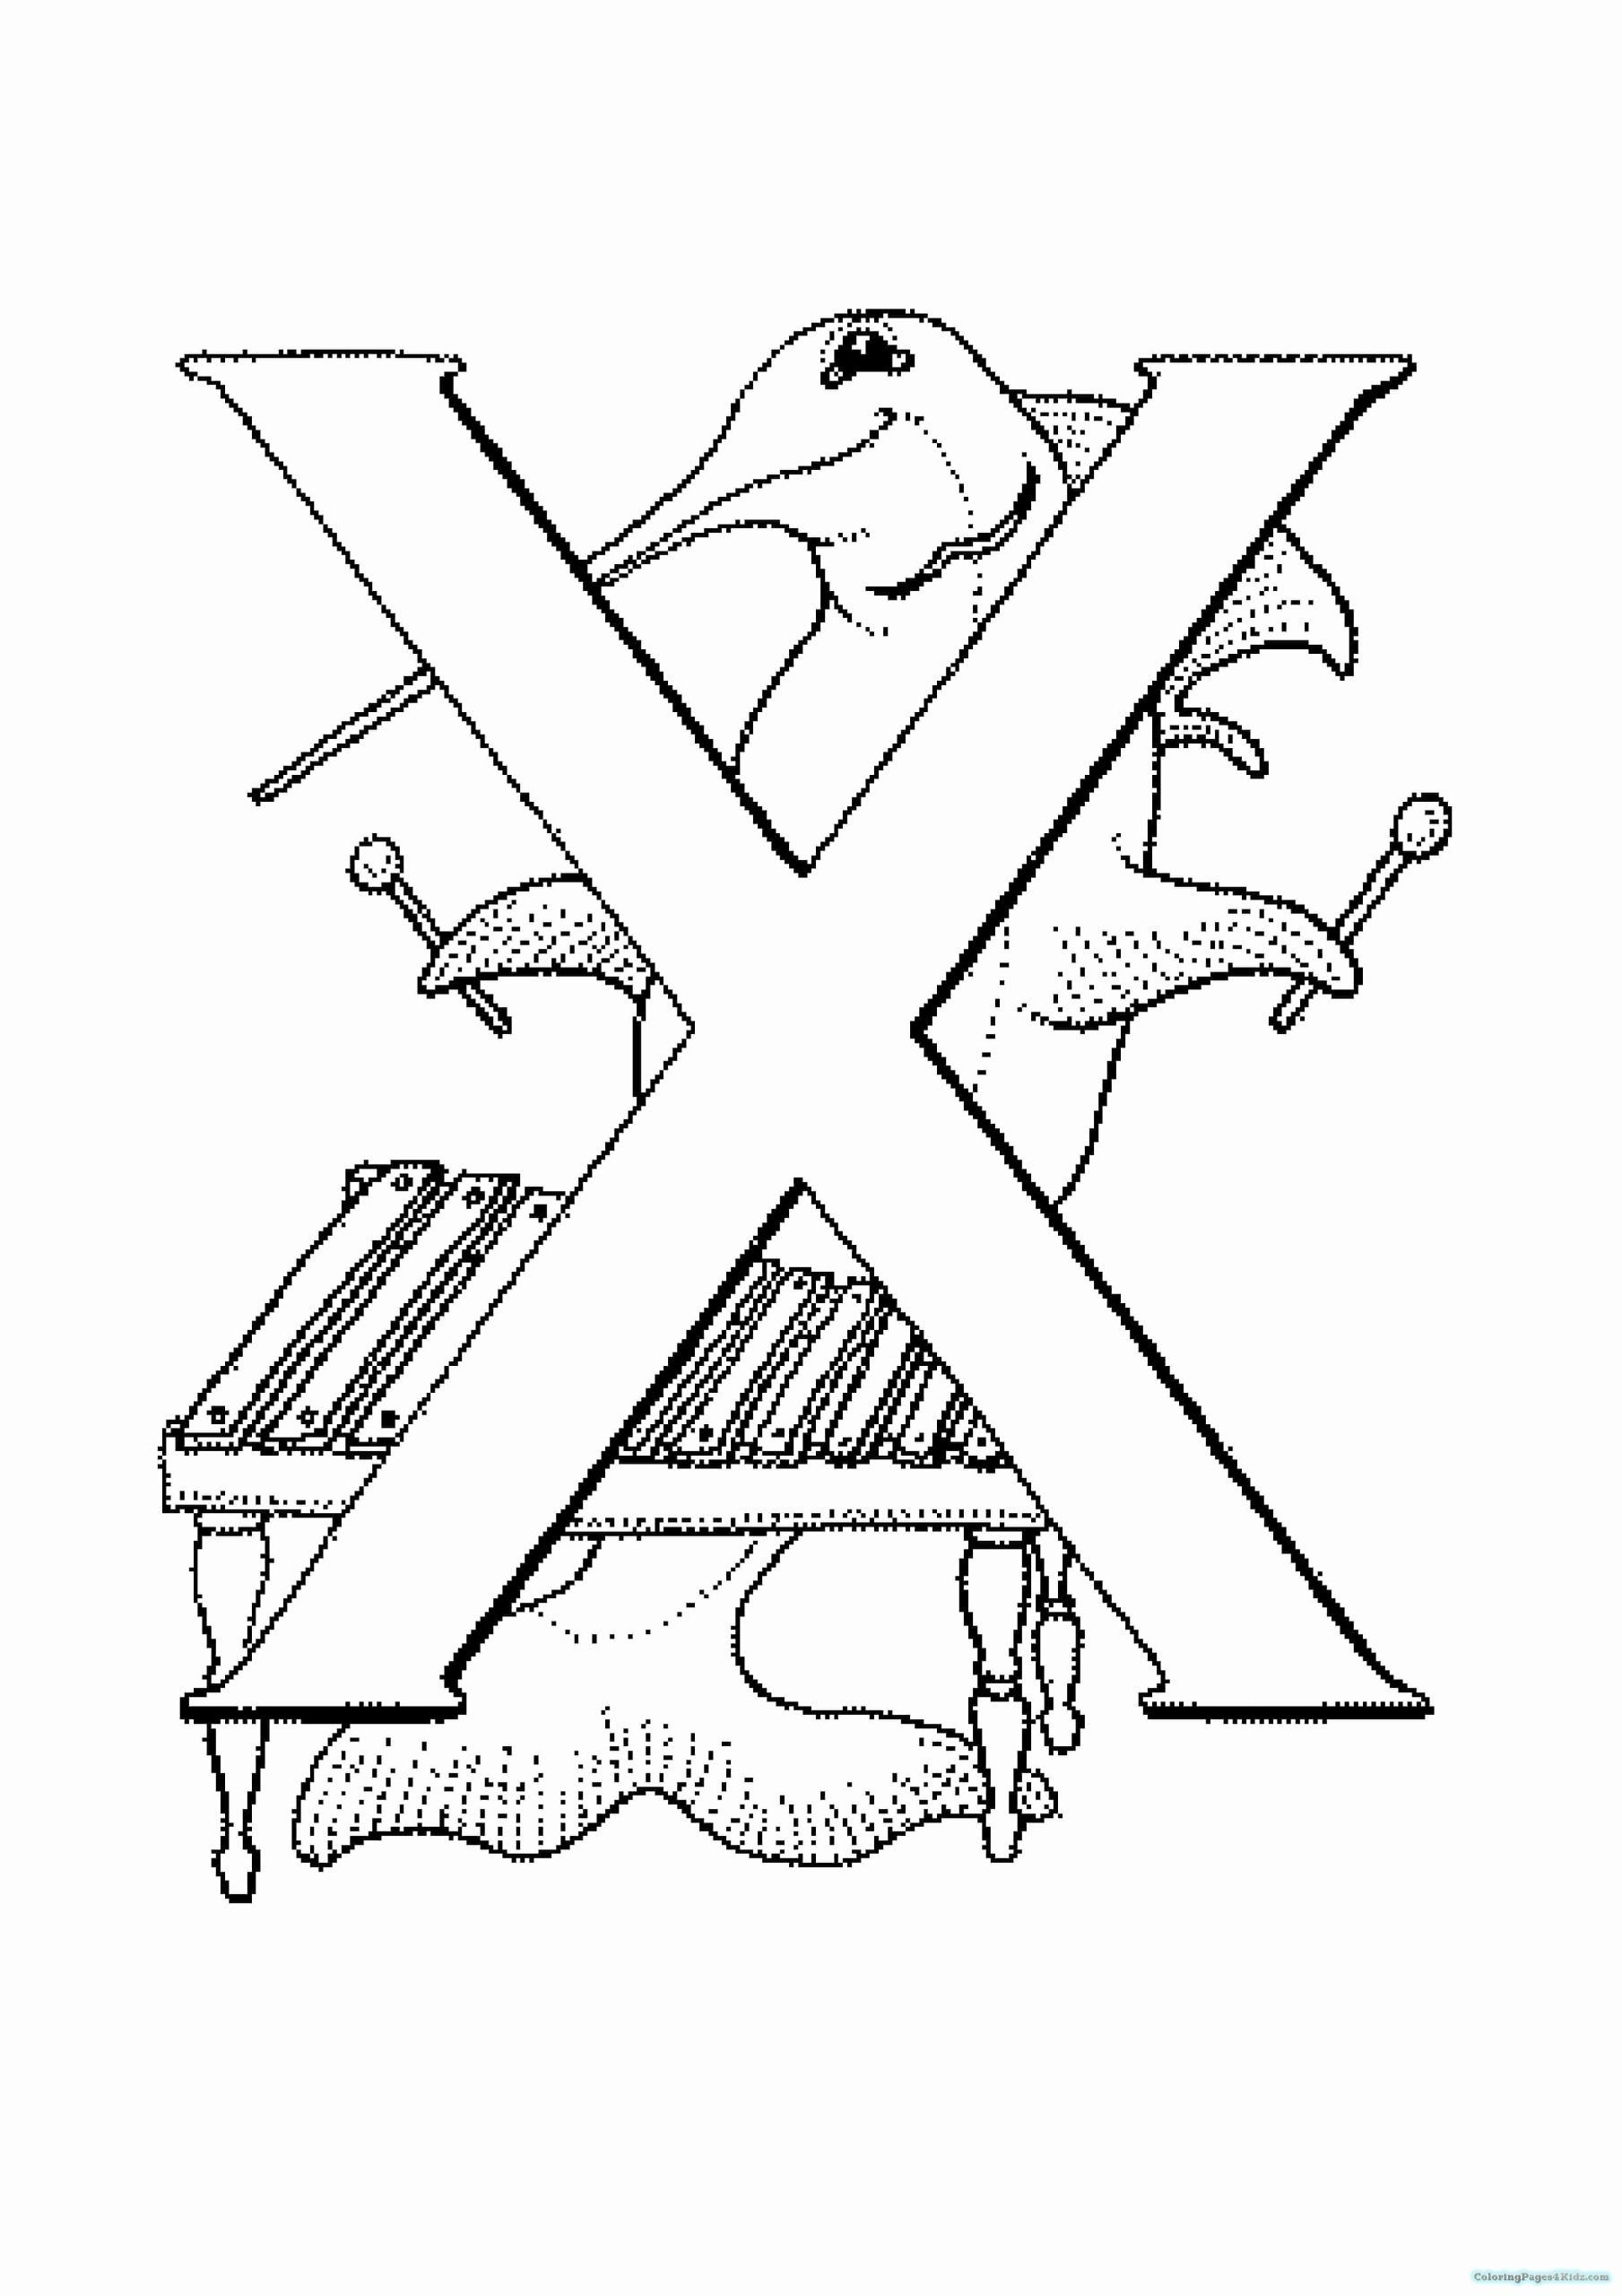 Letter X Coloring Pages Best Of Letter X Coloring Pages Preschool In 2020 Coloring Pages Inspirational Coloring Pages Alphabet Coloring Pages